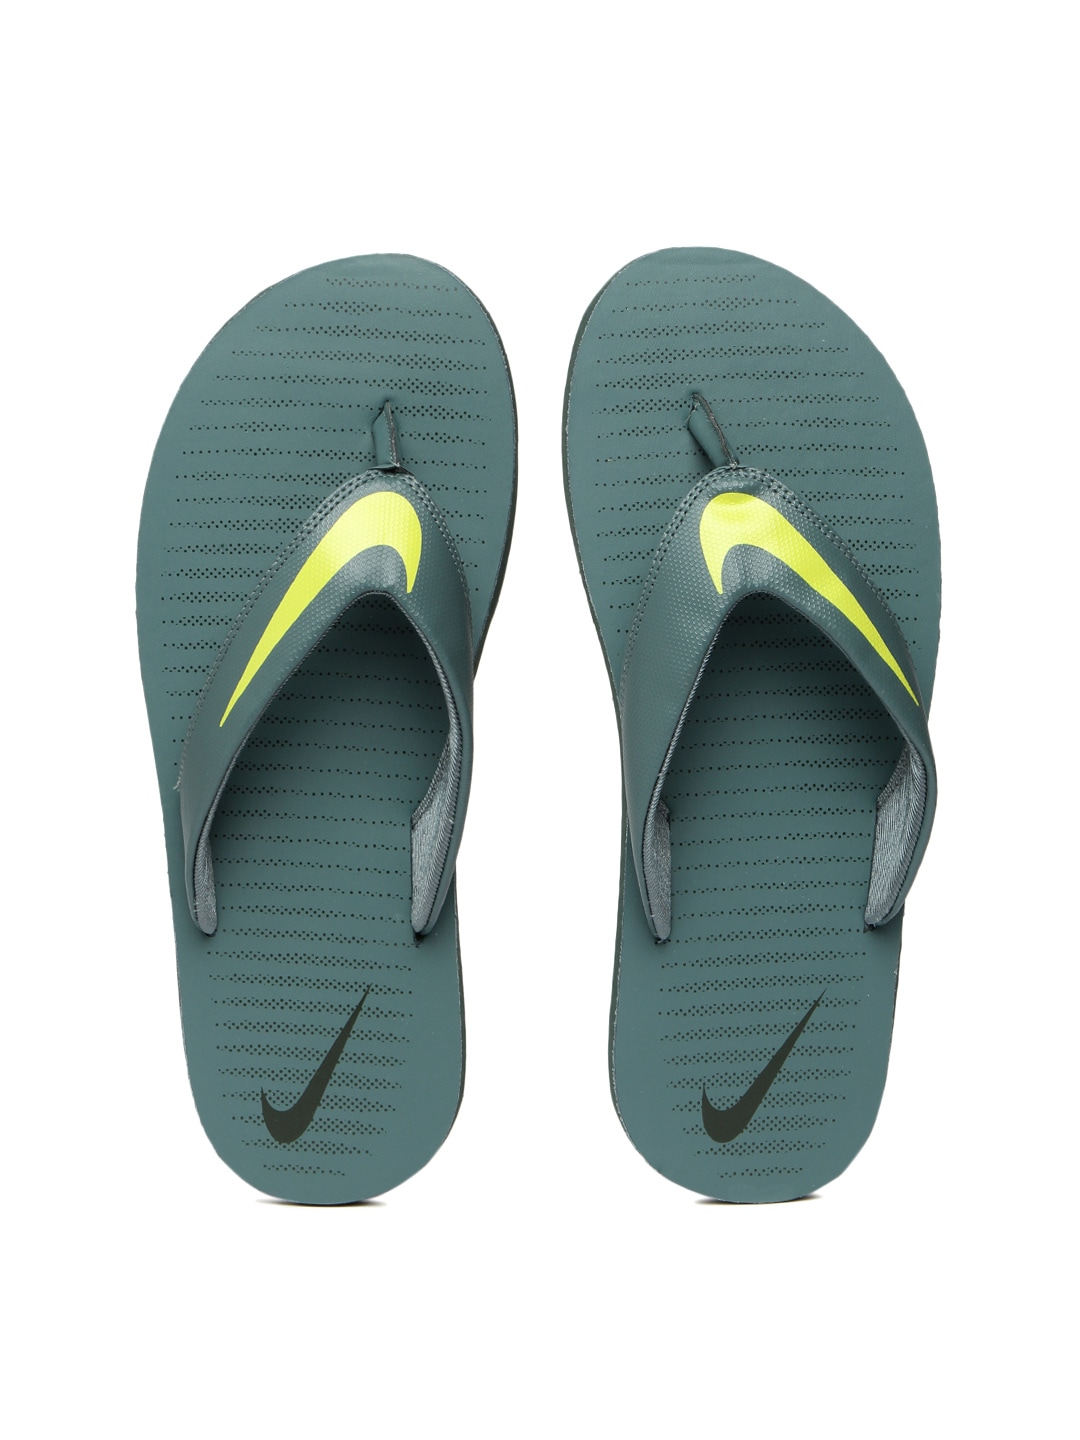 9bb0a234b155 Nike 833808-300 Men Green Chroma Thong 5 Flip Flops - Best Price ...